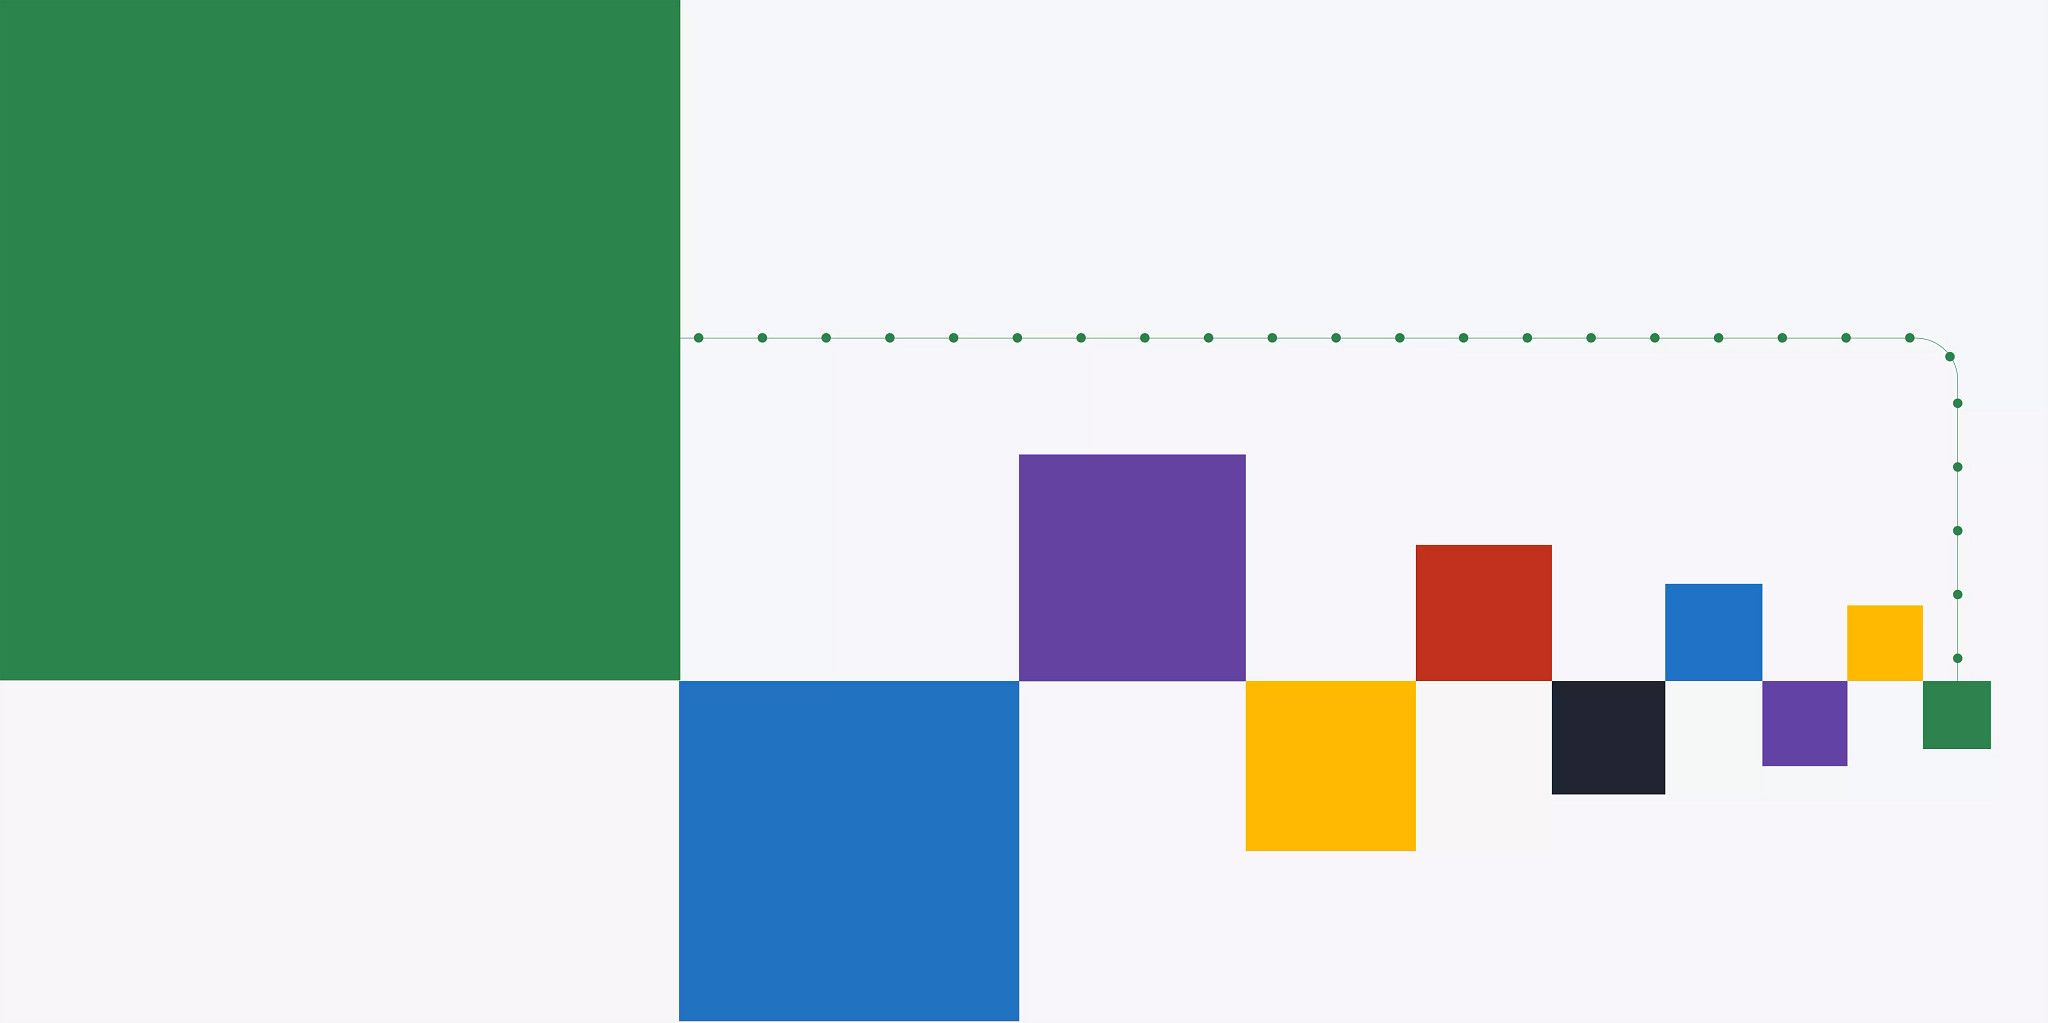 Graphic illustration with multiple solid colored boxes in varying sizes. With the largest one in the upper left corner and the others following to the right in diminishing sizes.